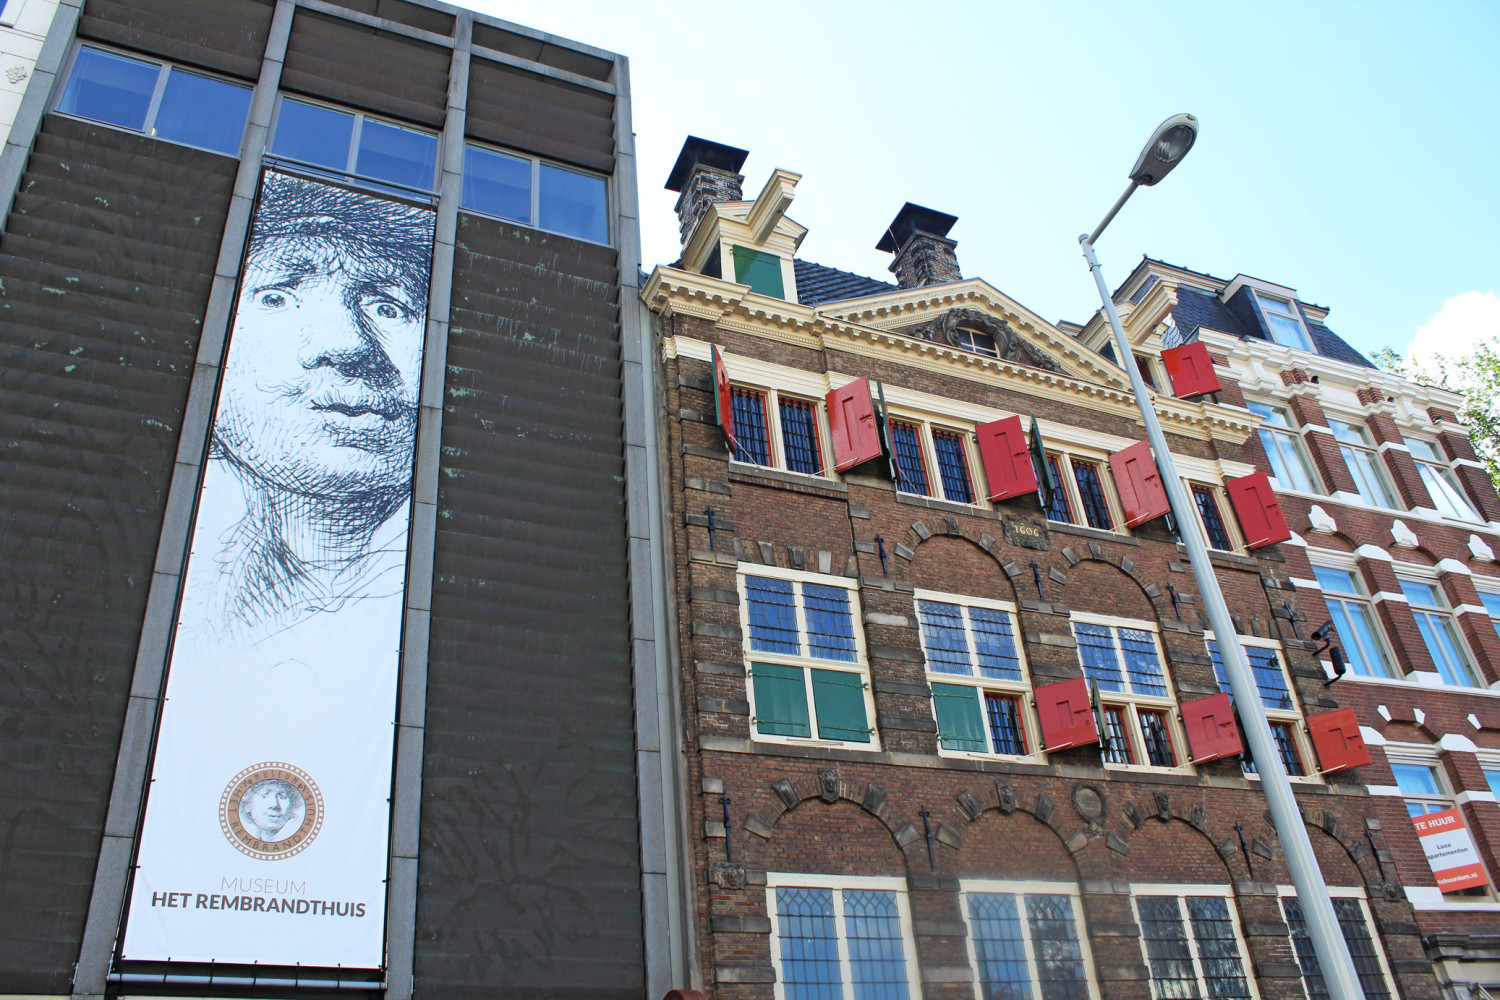 Museums in Amsterdam